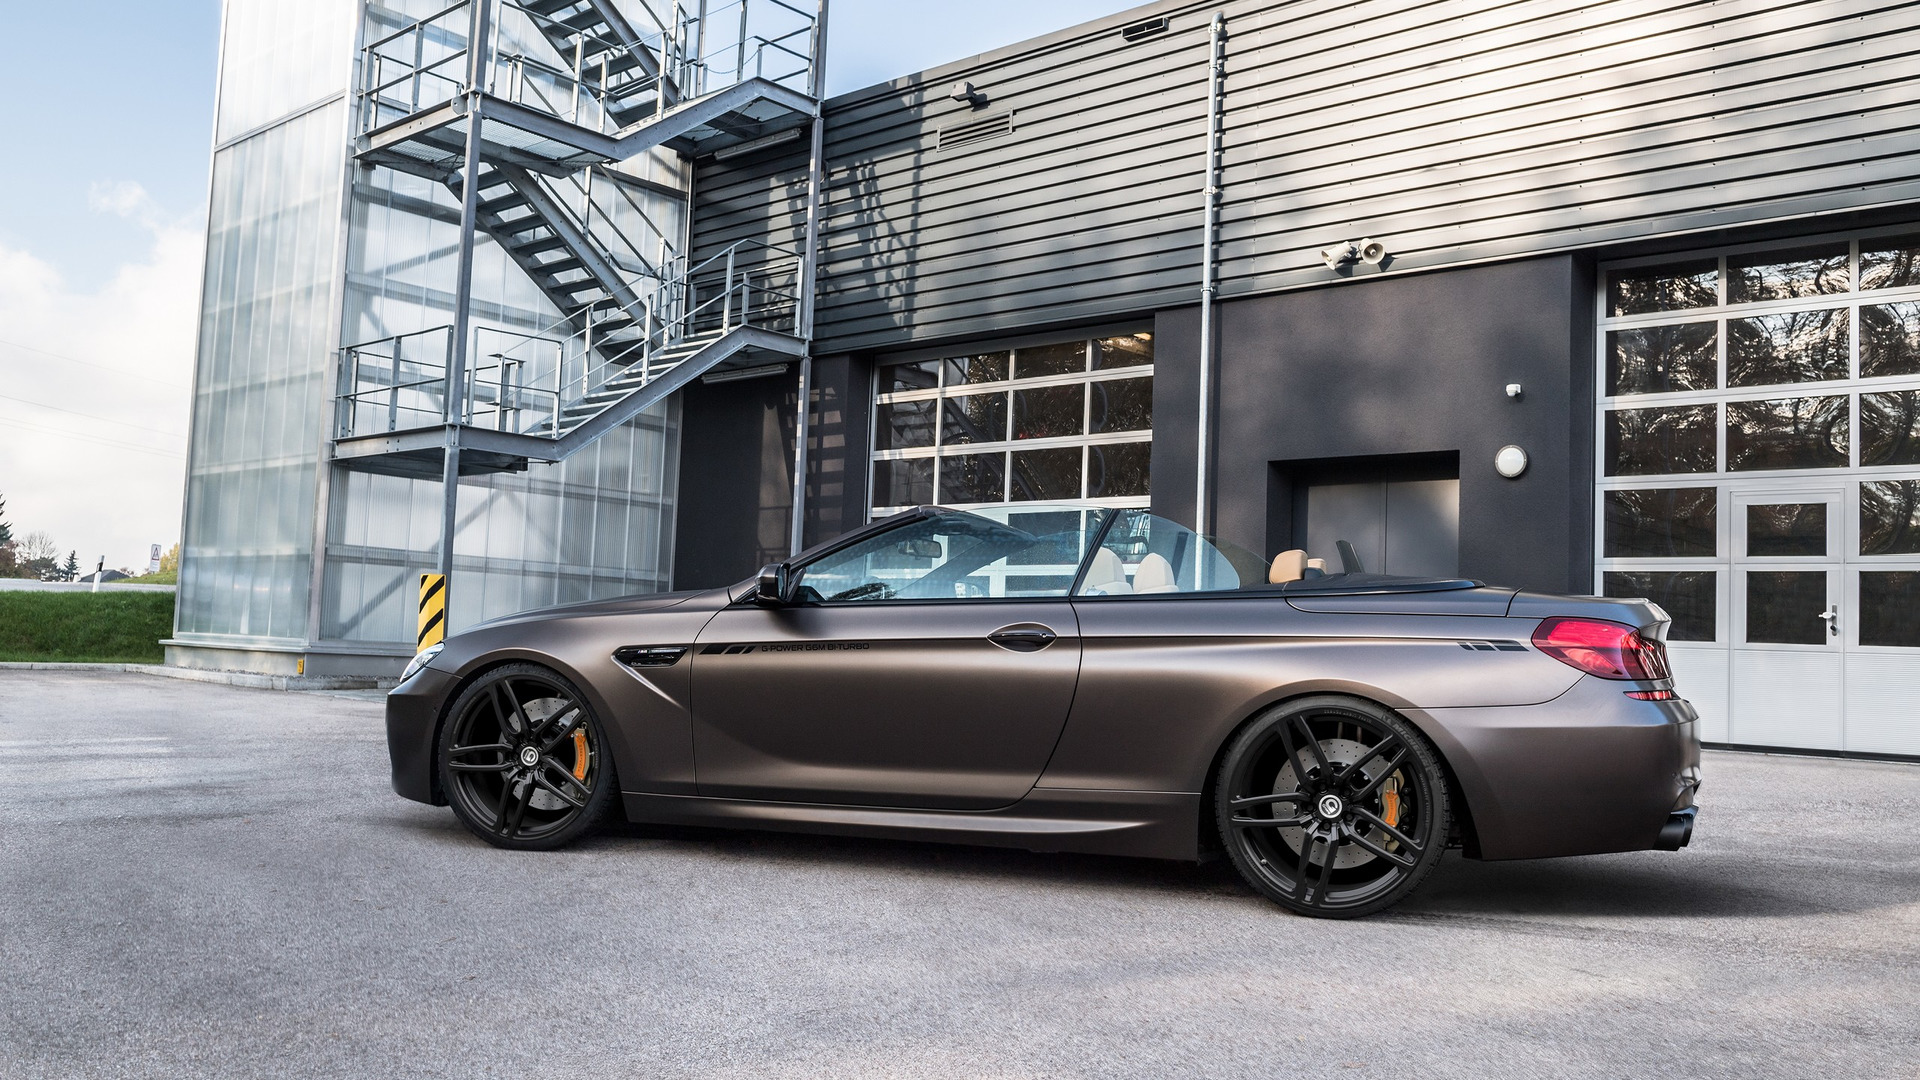 Bmw M6 Convertible Tuned To 800 Hp Can Hit 205 Mph 330 Kph